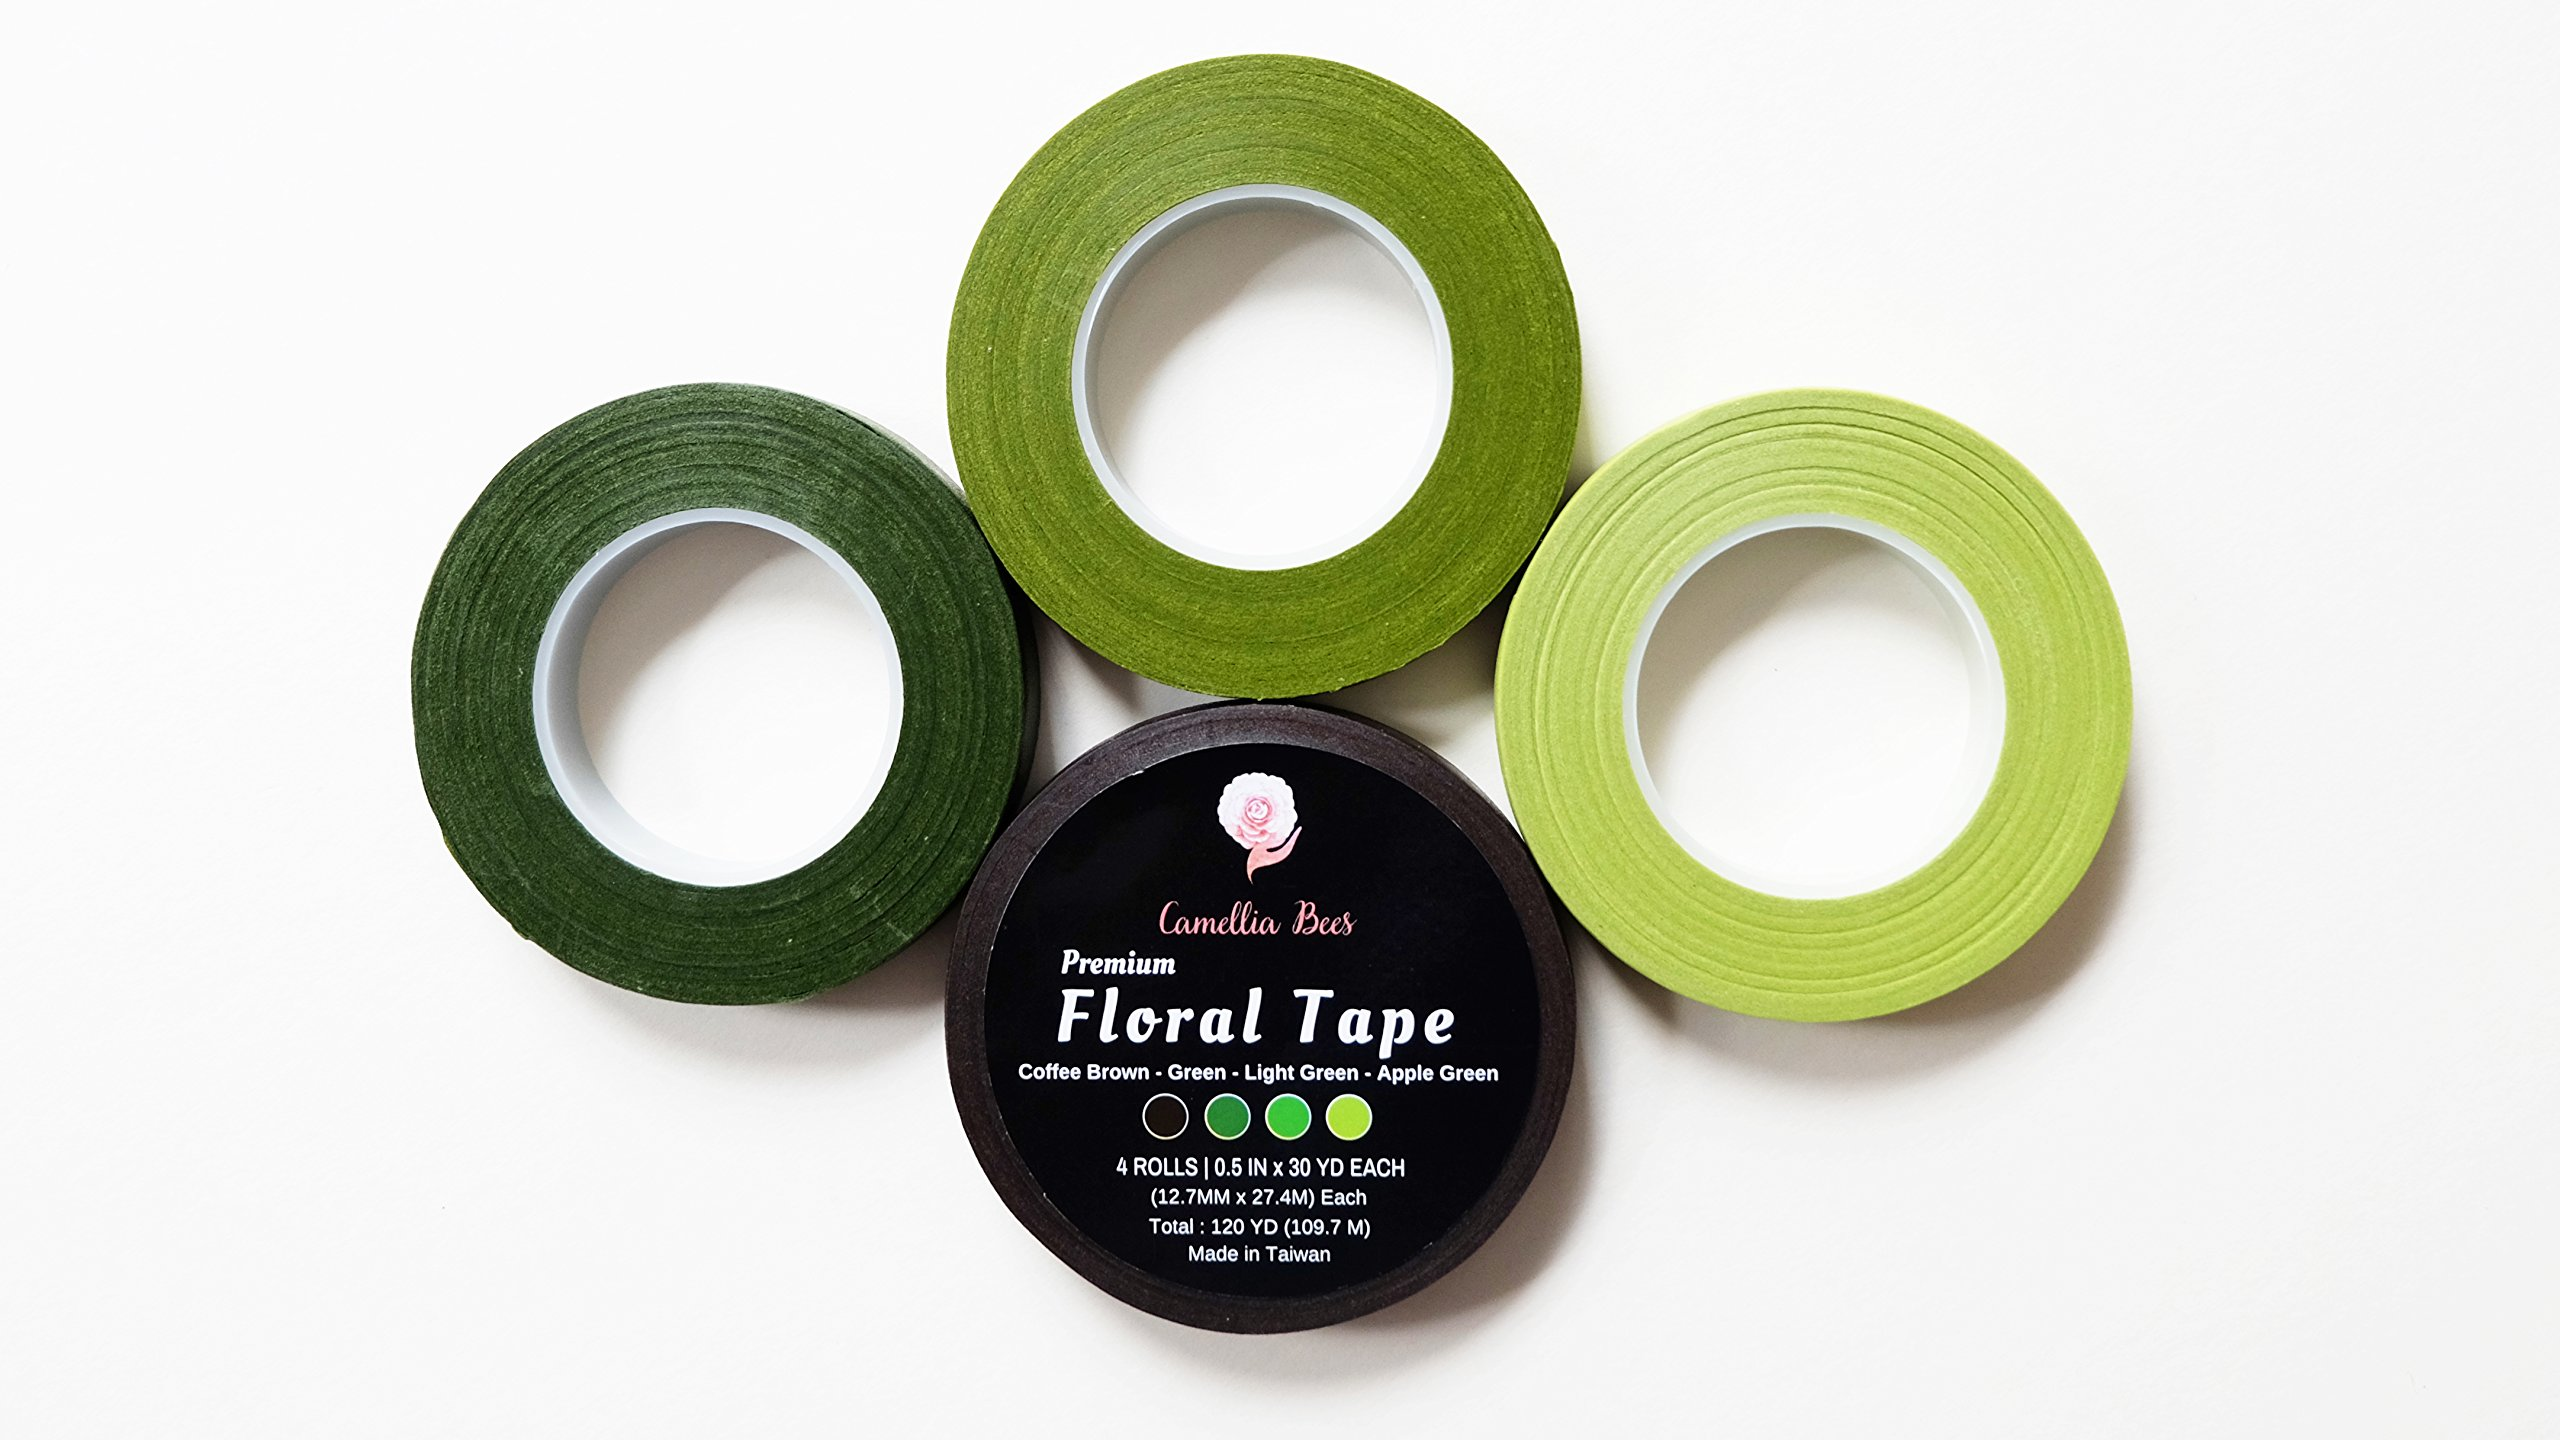 4 Rolls 1/2'' by 120 Yard Premium Quality Floral Tape, Self-Sealing, Adhesive,4 Colors - Apple Green, Light Green, Green,Coffee Brown for stem wrap w/'How to use Floral Tape and Succulent Decor' ebook